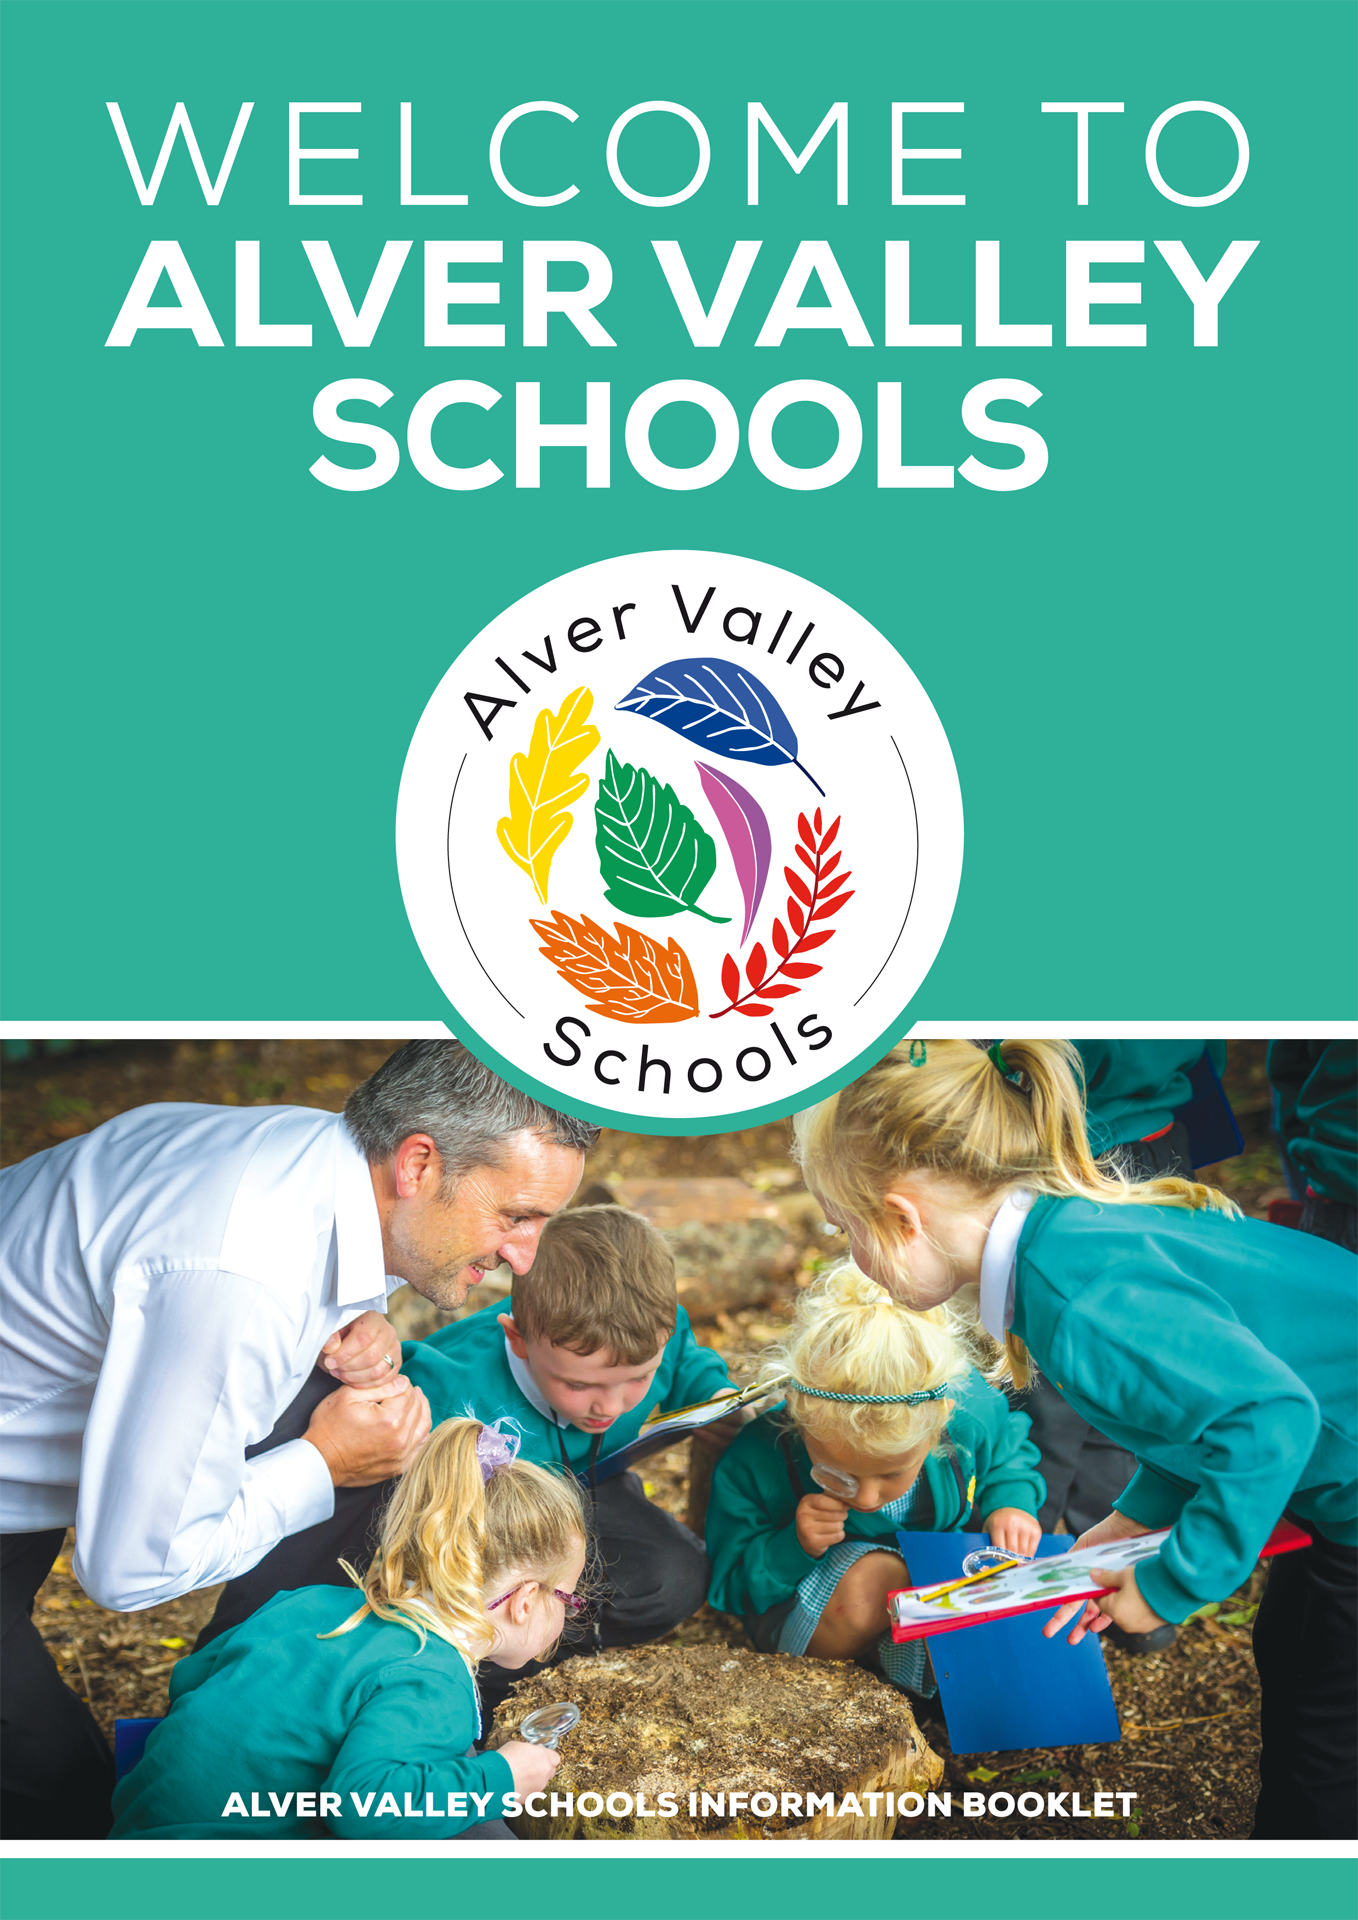 Welcome to Alver Valley Schools booklet